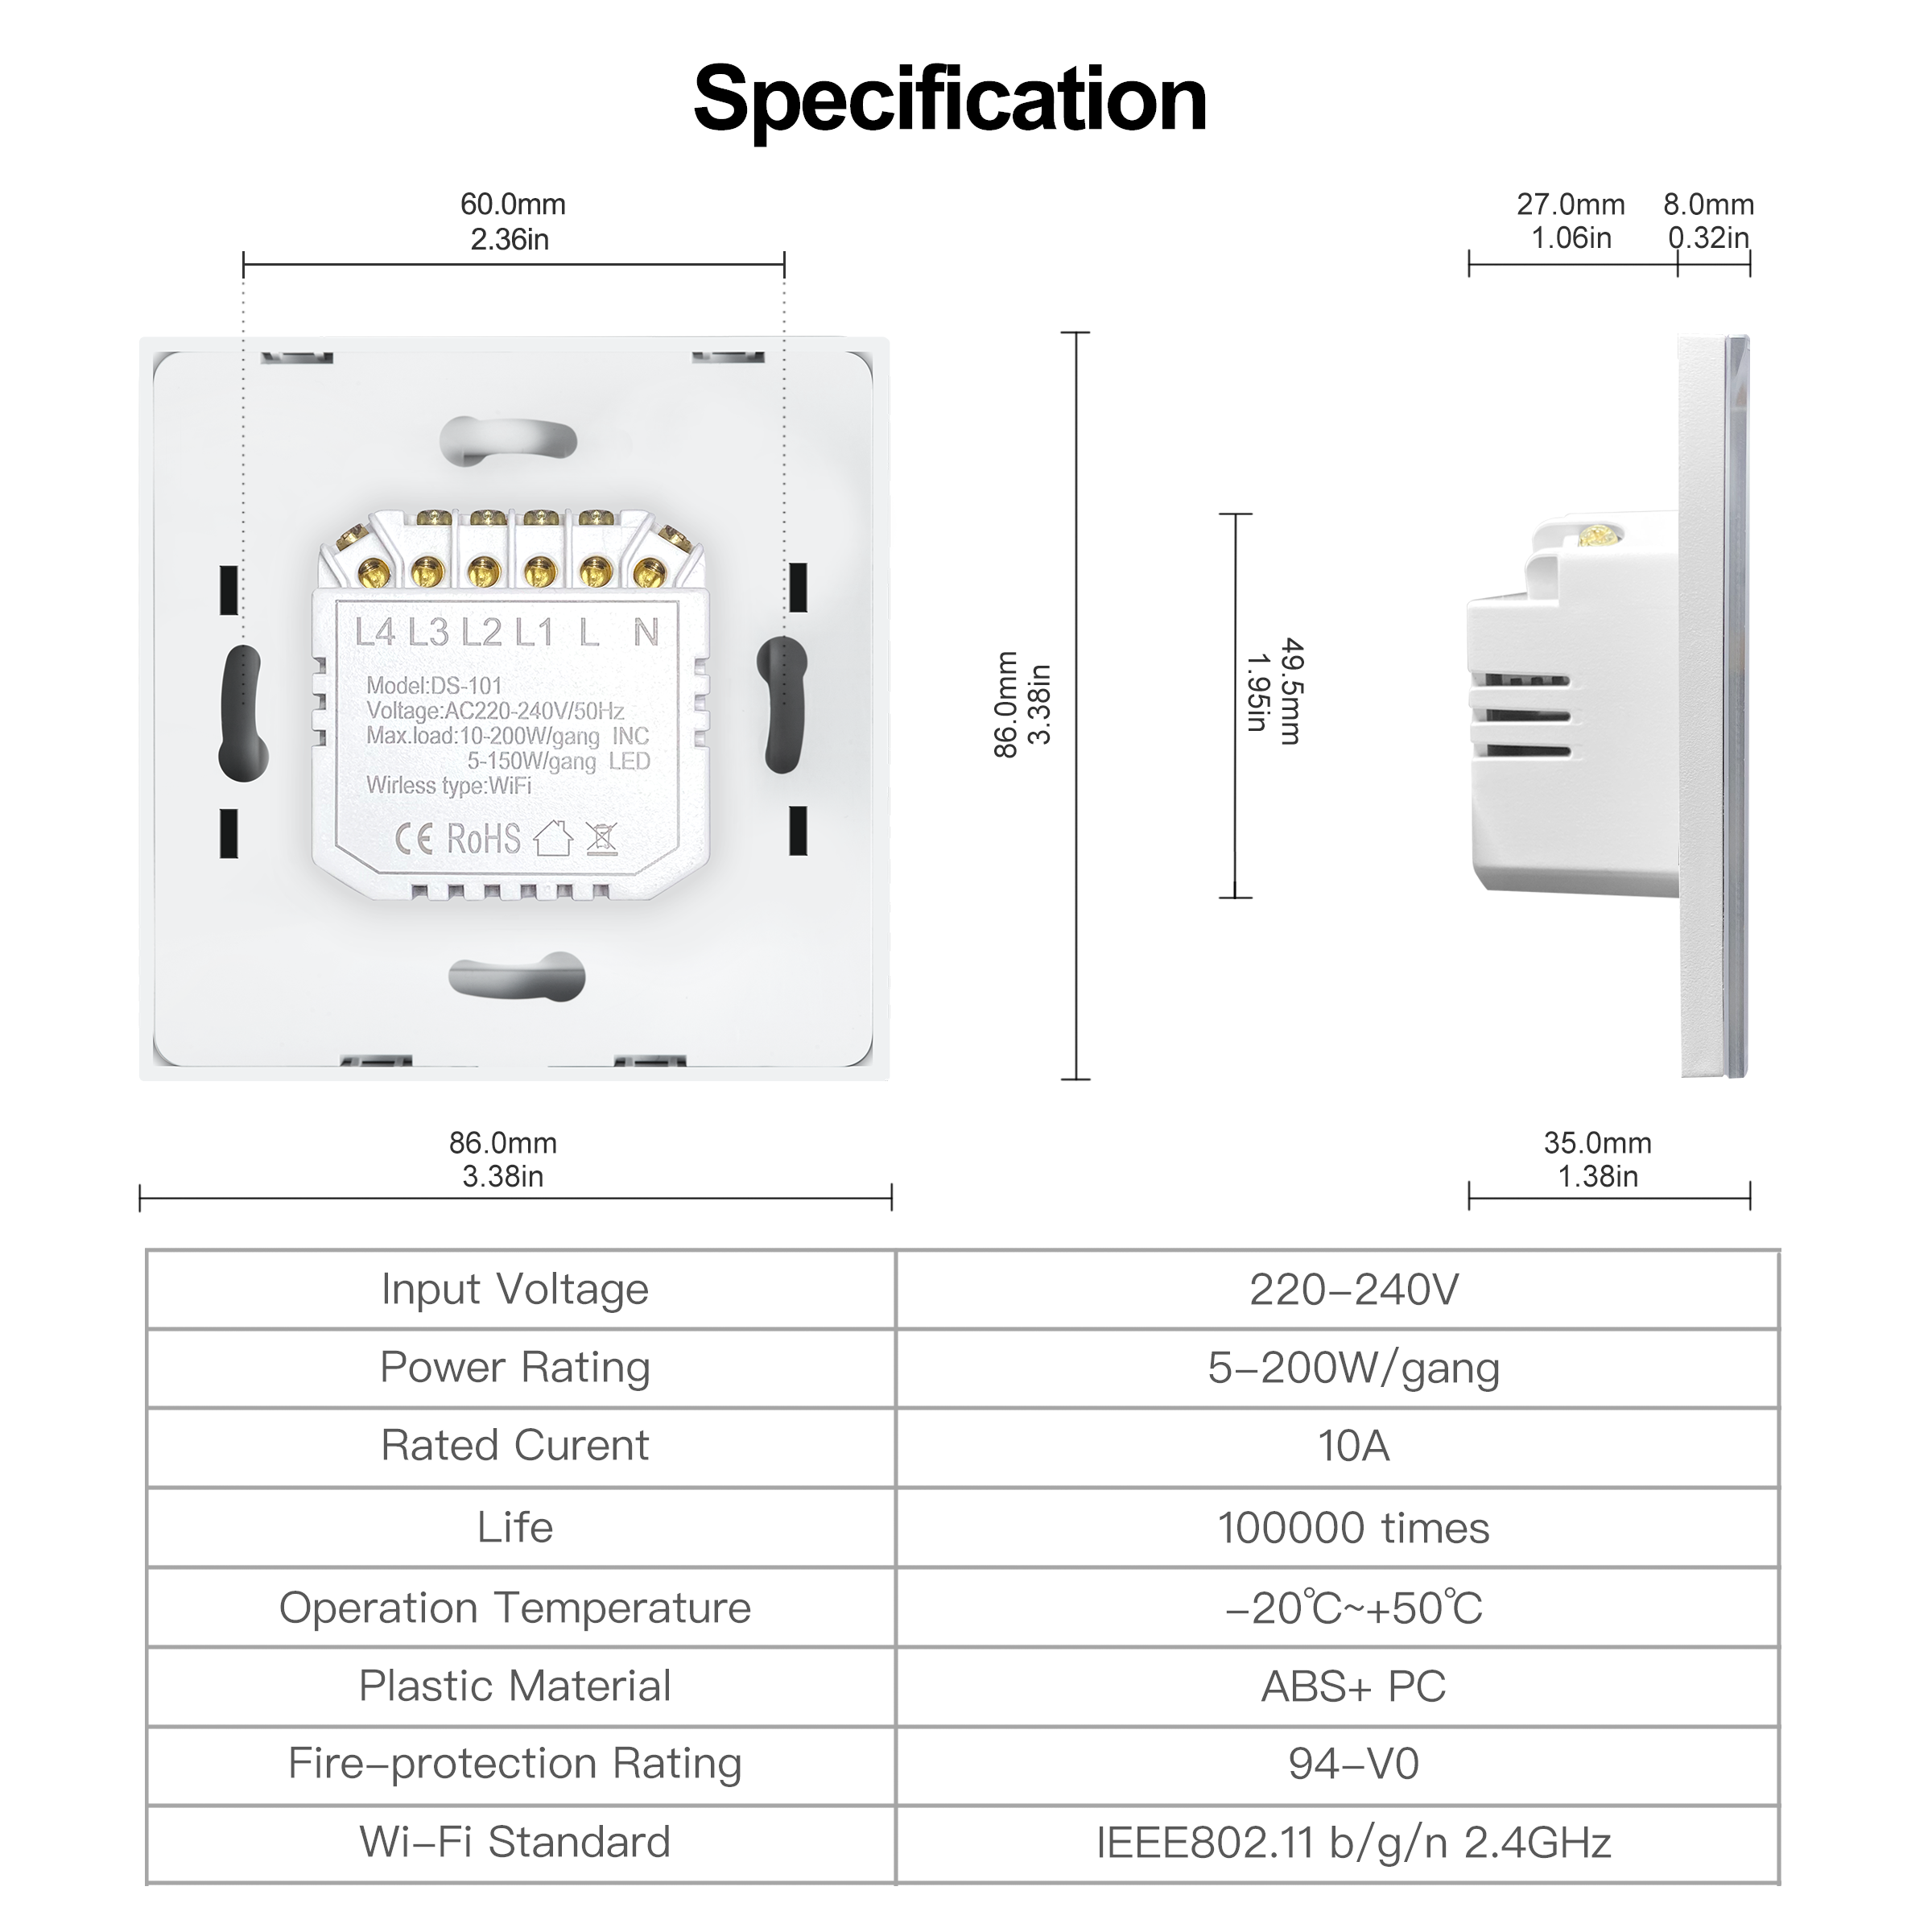 Tuya Smart Wifi Touch Light Switch EU 220V, No Neutral Wire Required Wall Switch 1/2/3/4 Gang, Compatible with Alexa Google Home 6